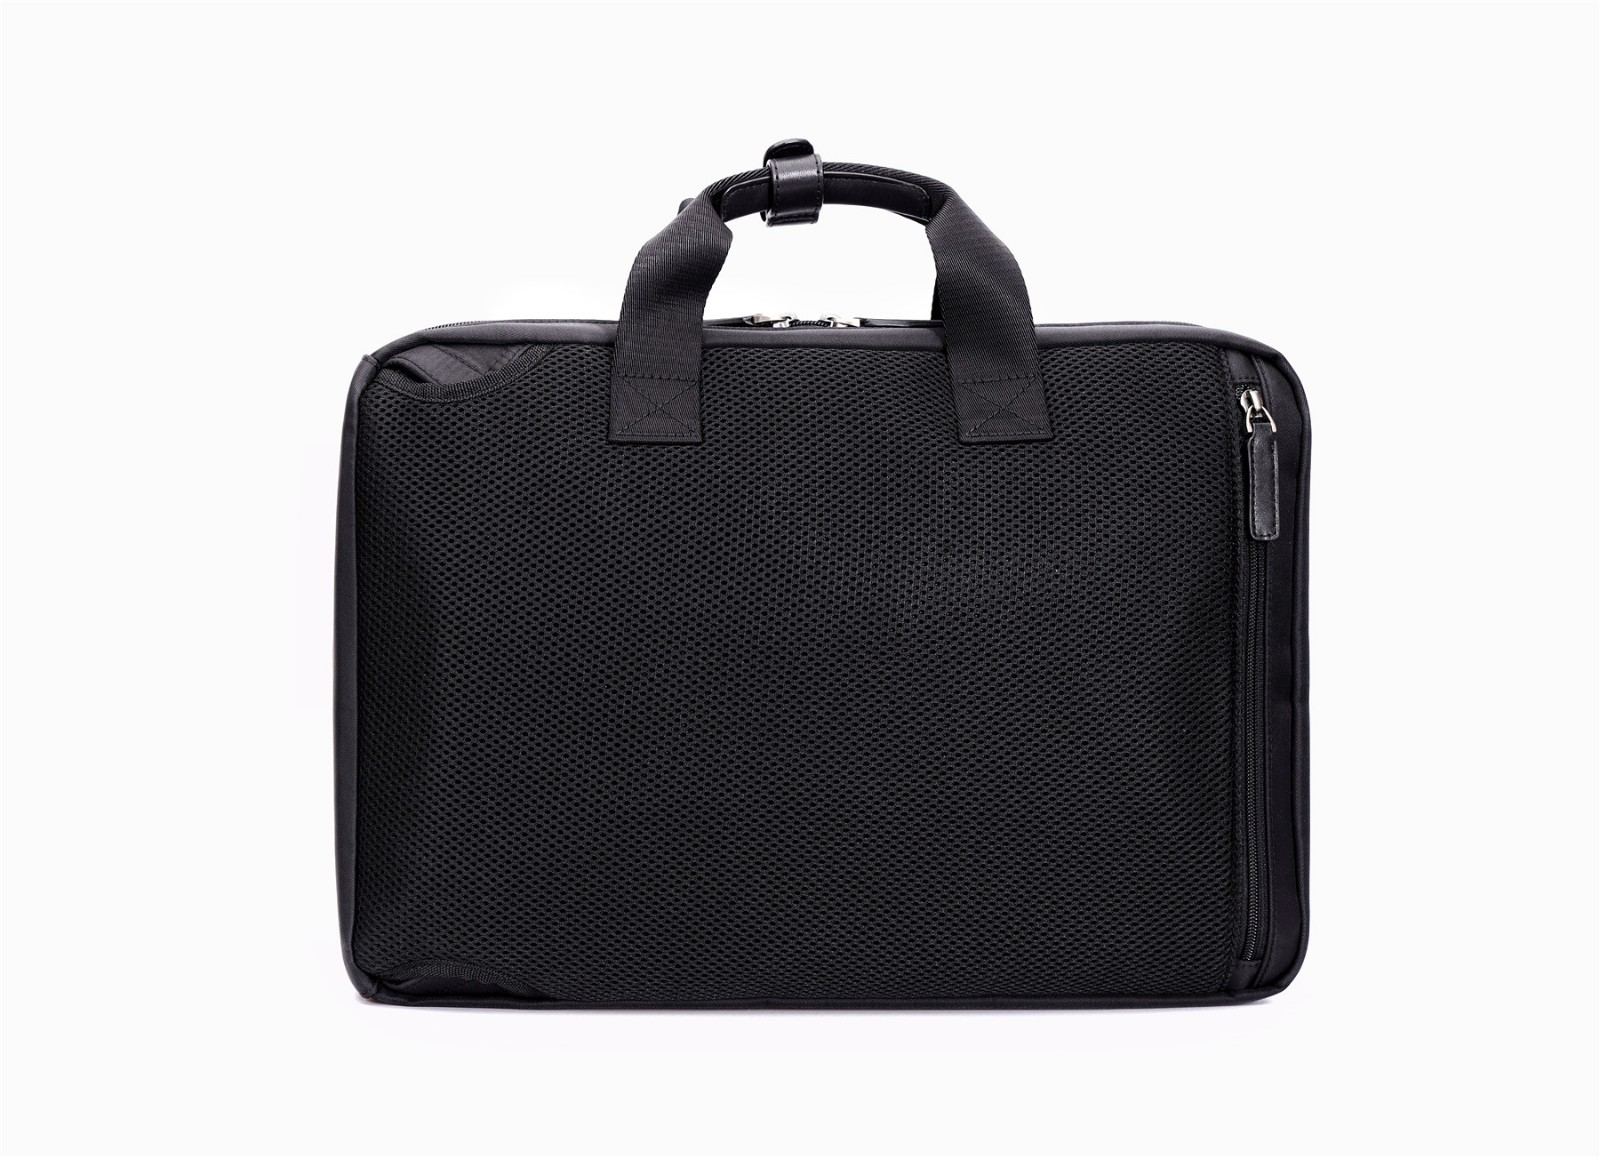 GF bags-Custom Brief Cases Manufacturer, Lightweight Briefcase | Briefcase-9